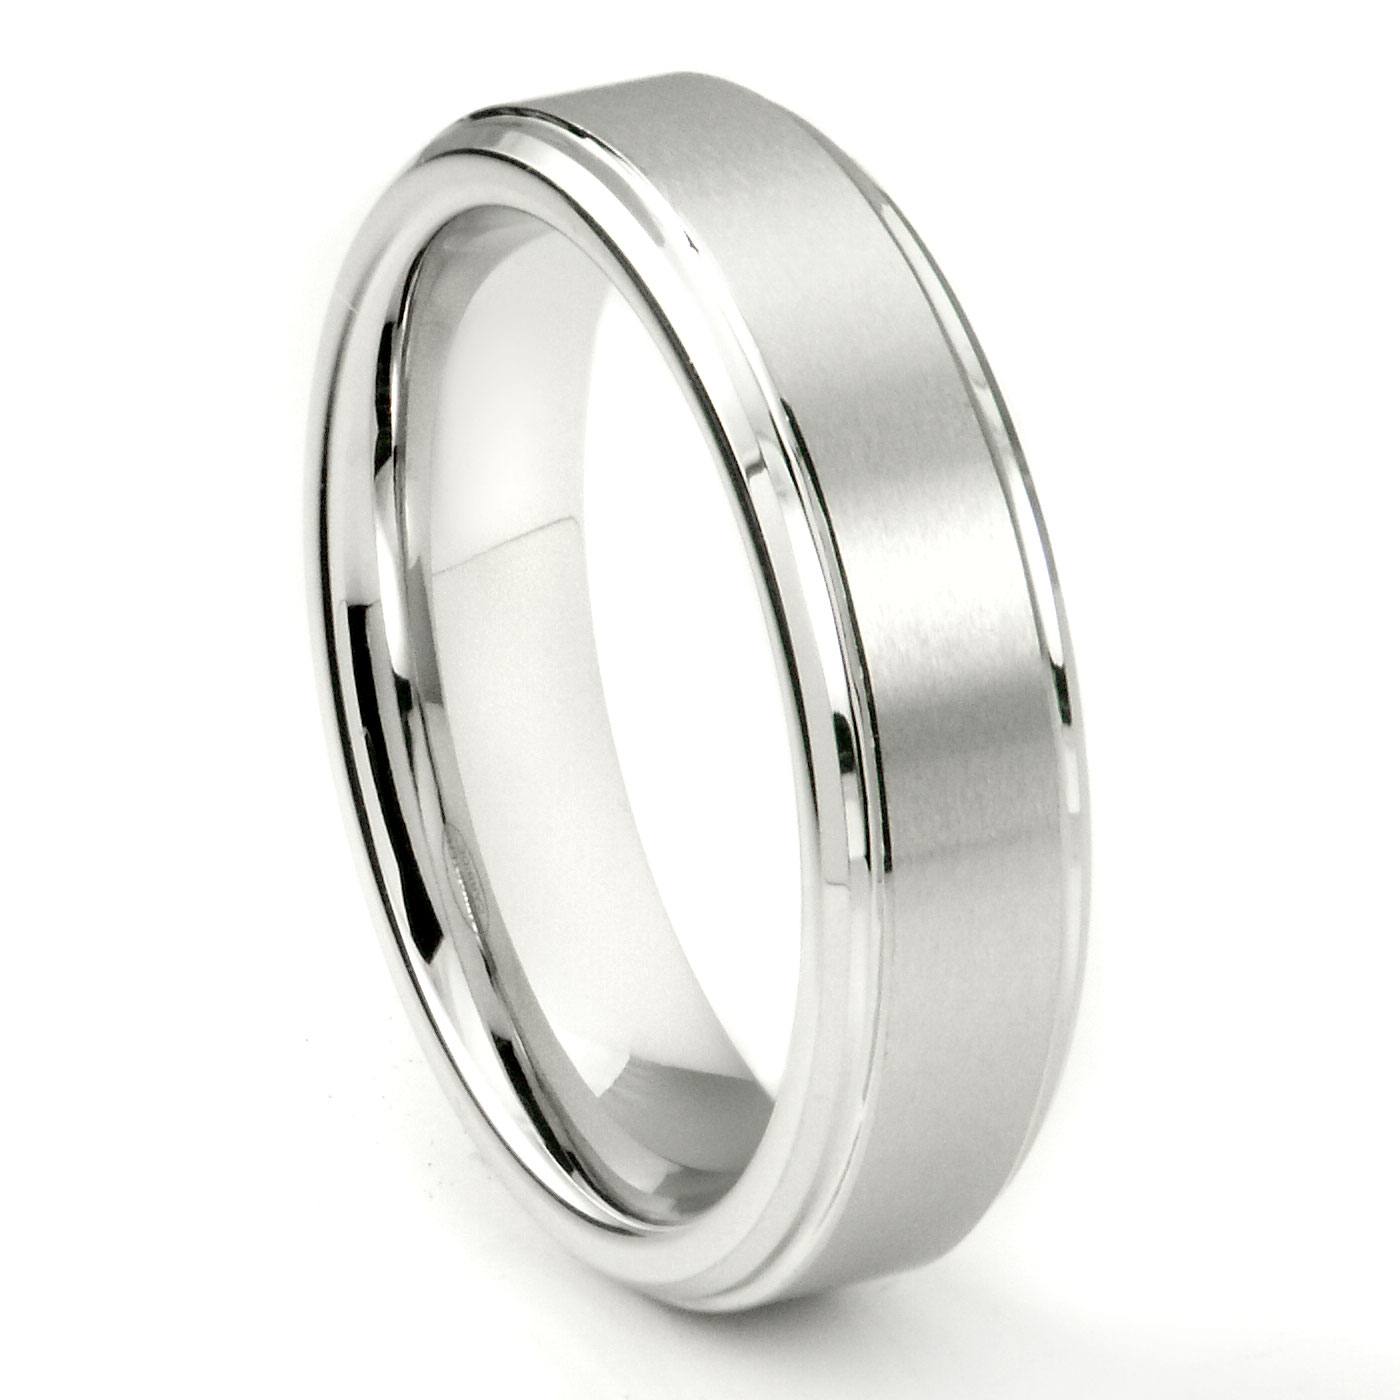 White Tungsten Carbide 6MM Wedding Band Ring w Raised Center P tungsten carbide wedding rings Home Men s Tungsten Carbide Rings Loading zoom